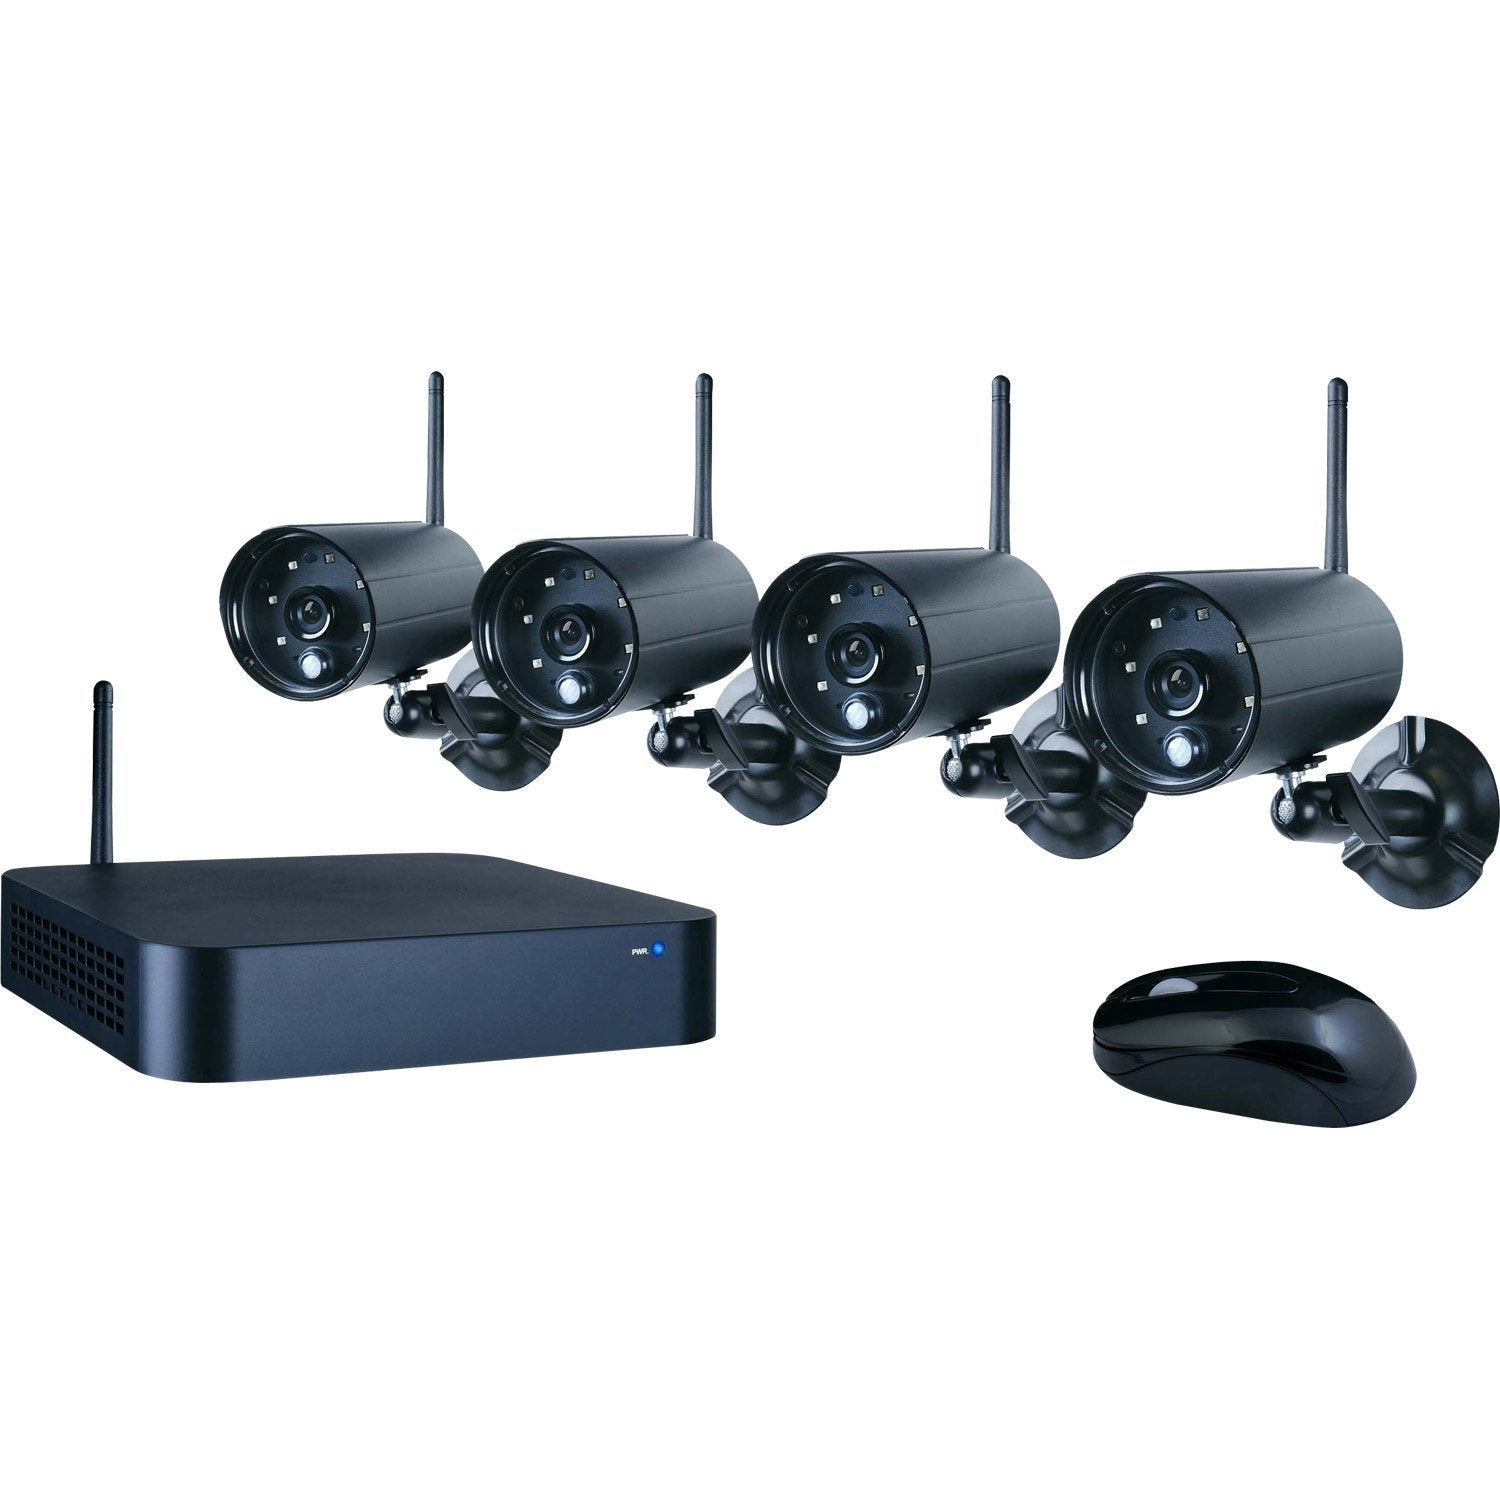 kit de vid osurveillance sans fil enregistreur 4 cam ras connect es smartwares leroy merlin. Black Bedroom Furniture Sets. Home Design Ideas